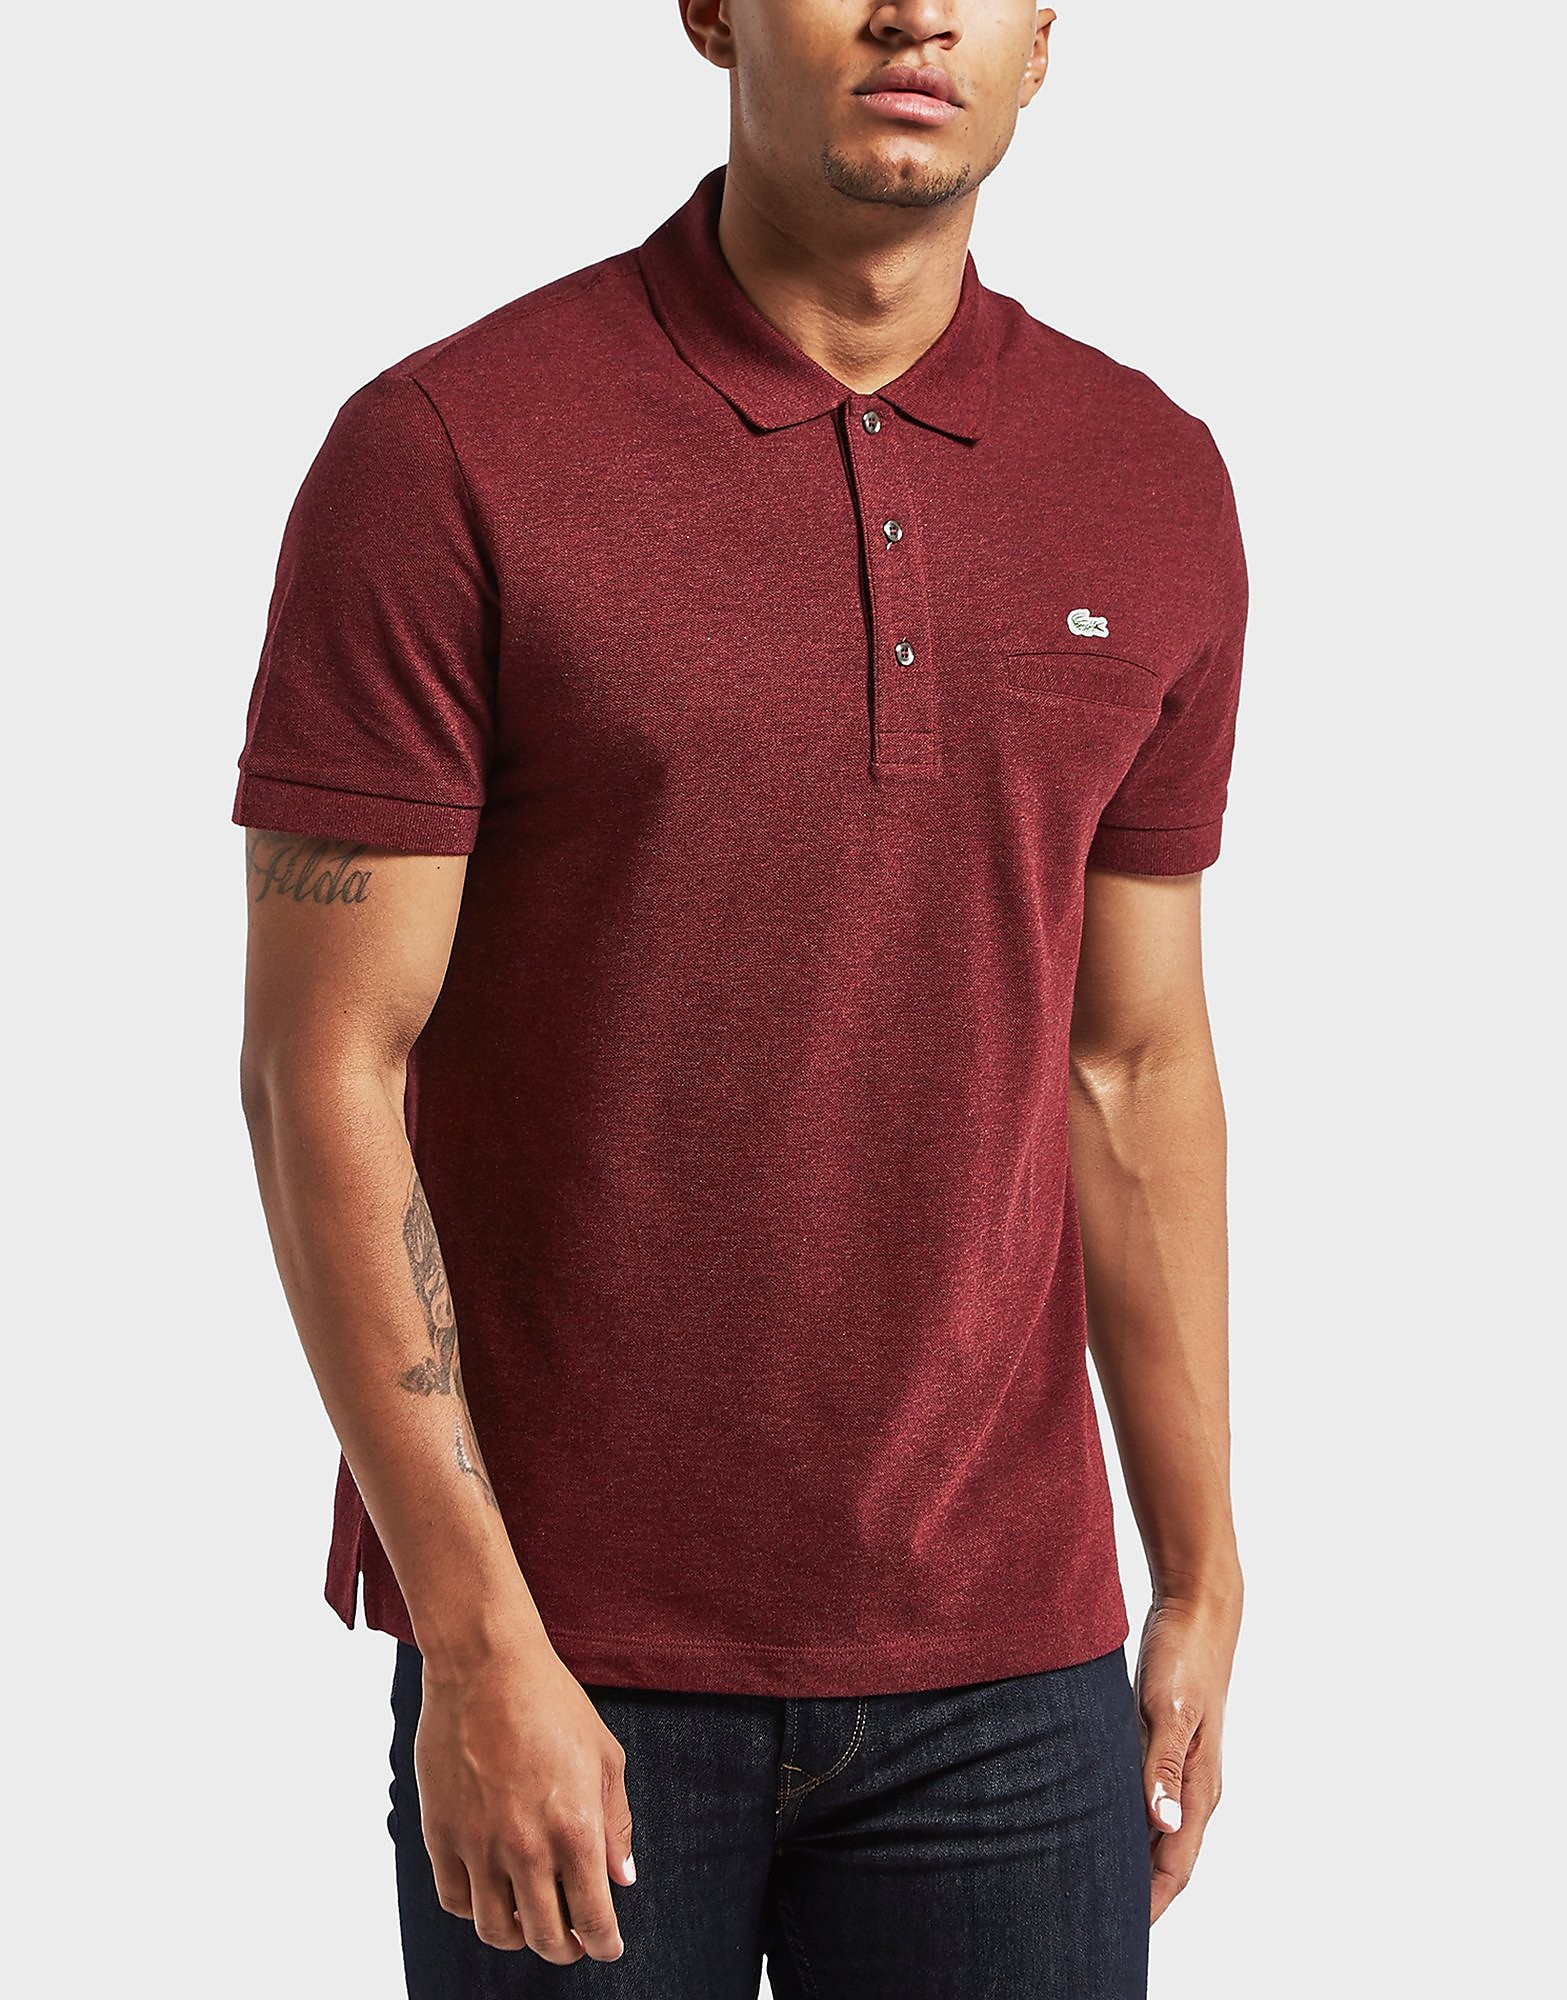 Lacoste Pocket Short Sleeve Polo Shirt